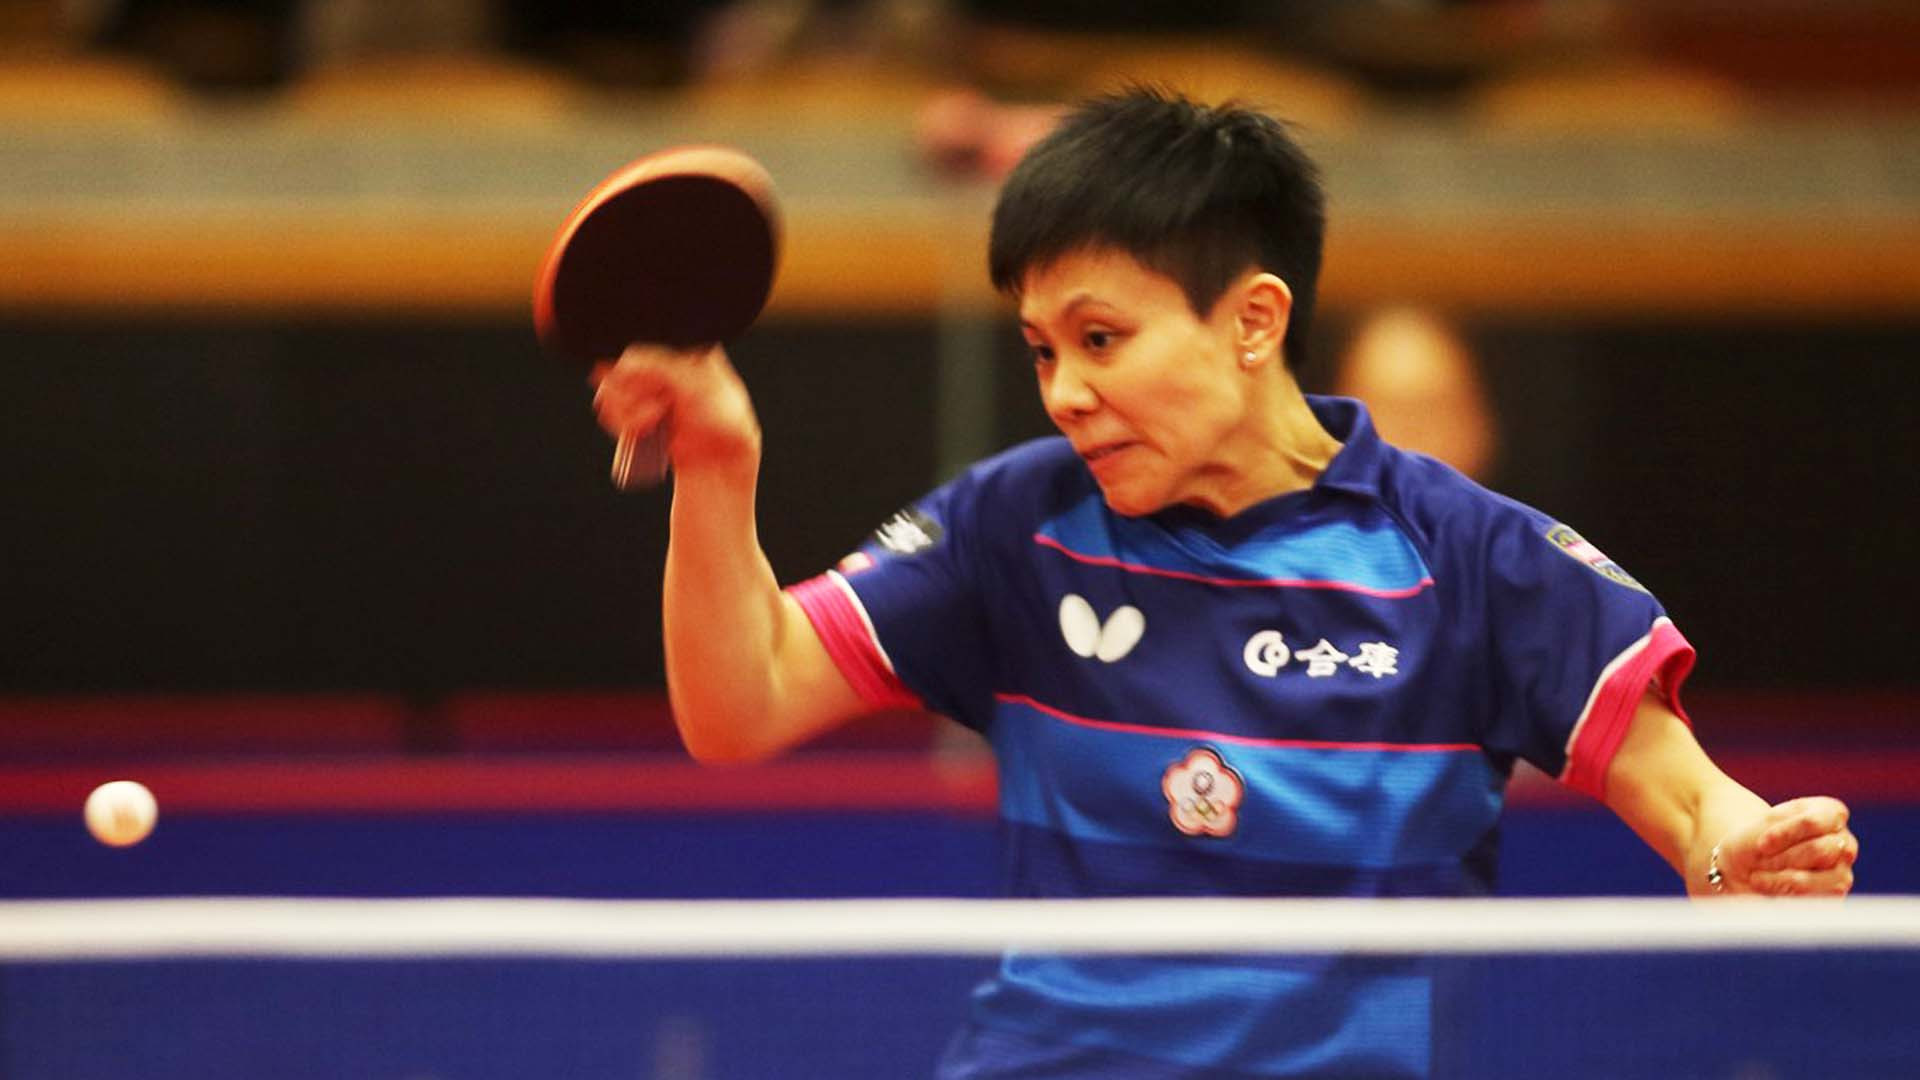 Chinese Taipei's Cheng I-Ching, the seventh seed, was made to work harder for her place in round two as she fought back from two games down to oust China's Li Jiayi ©ITTF